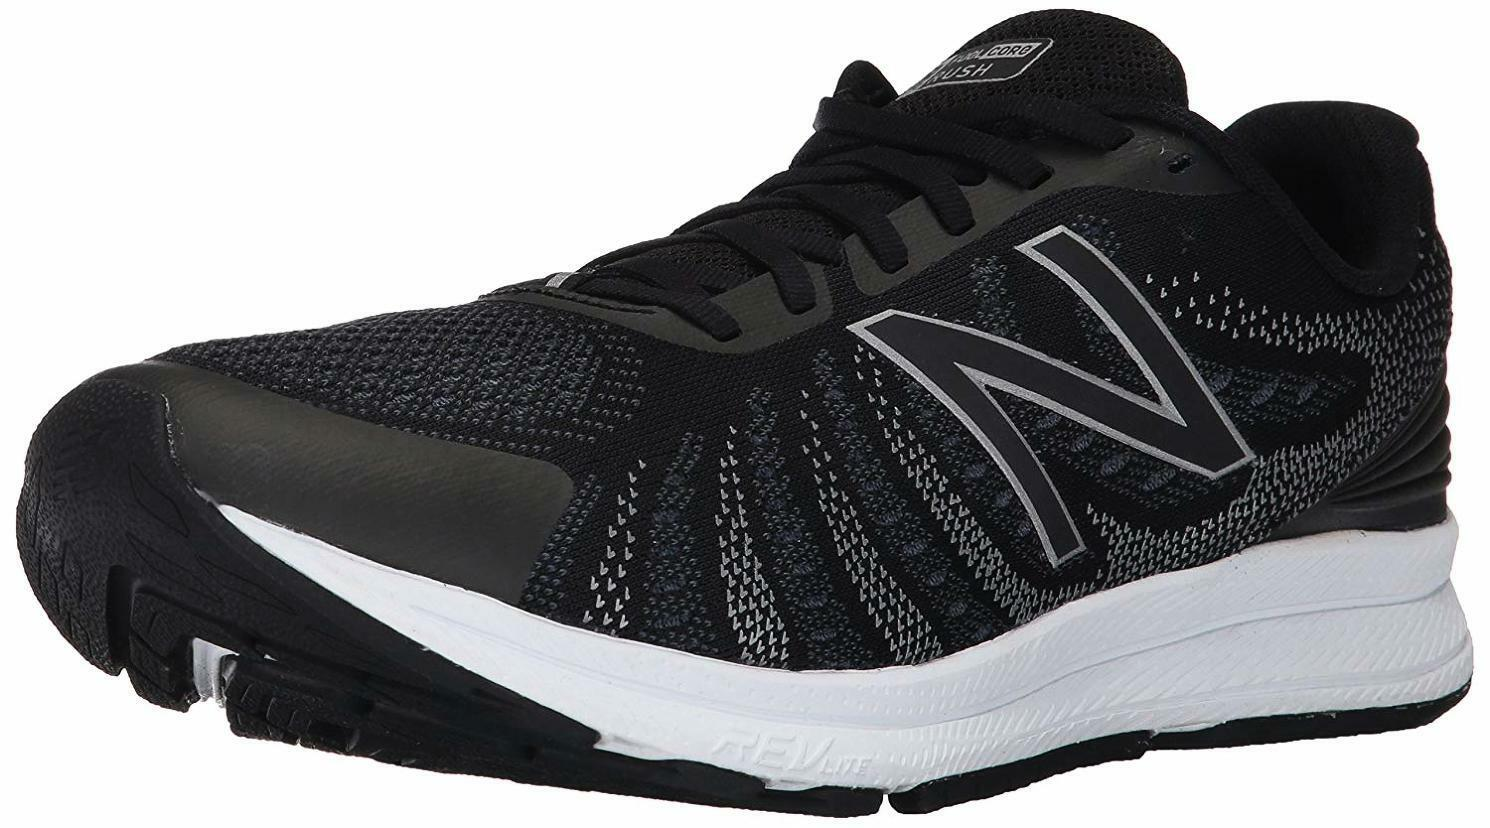 New Balance Men's RUSHV3 Running shoes - Choose SZ color